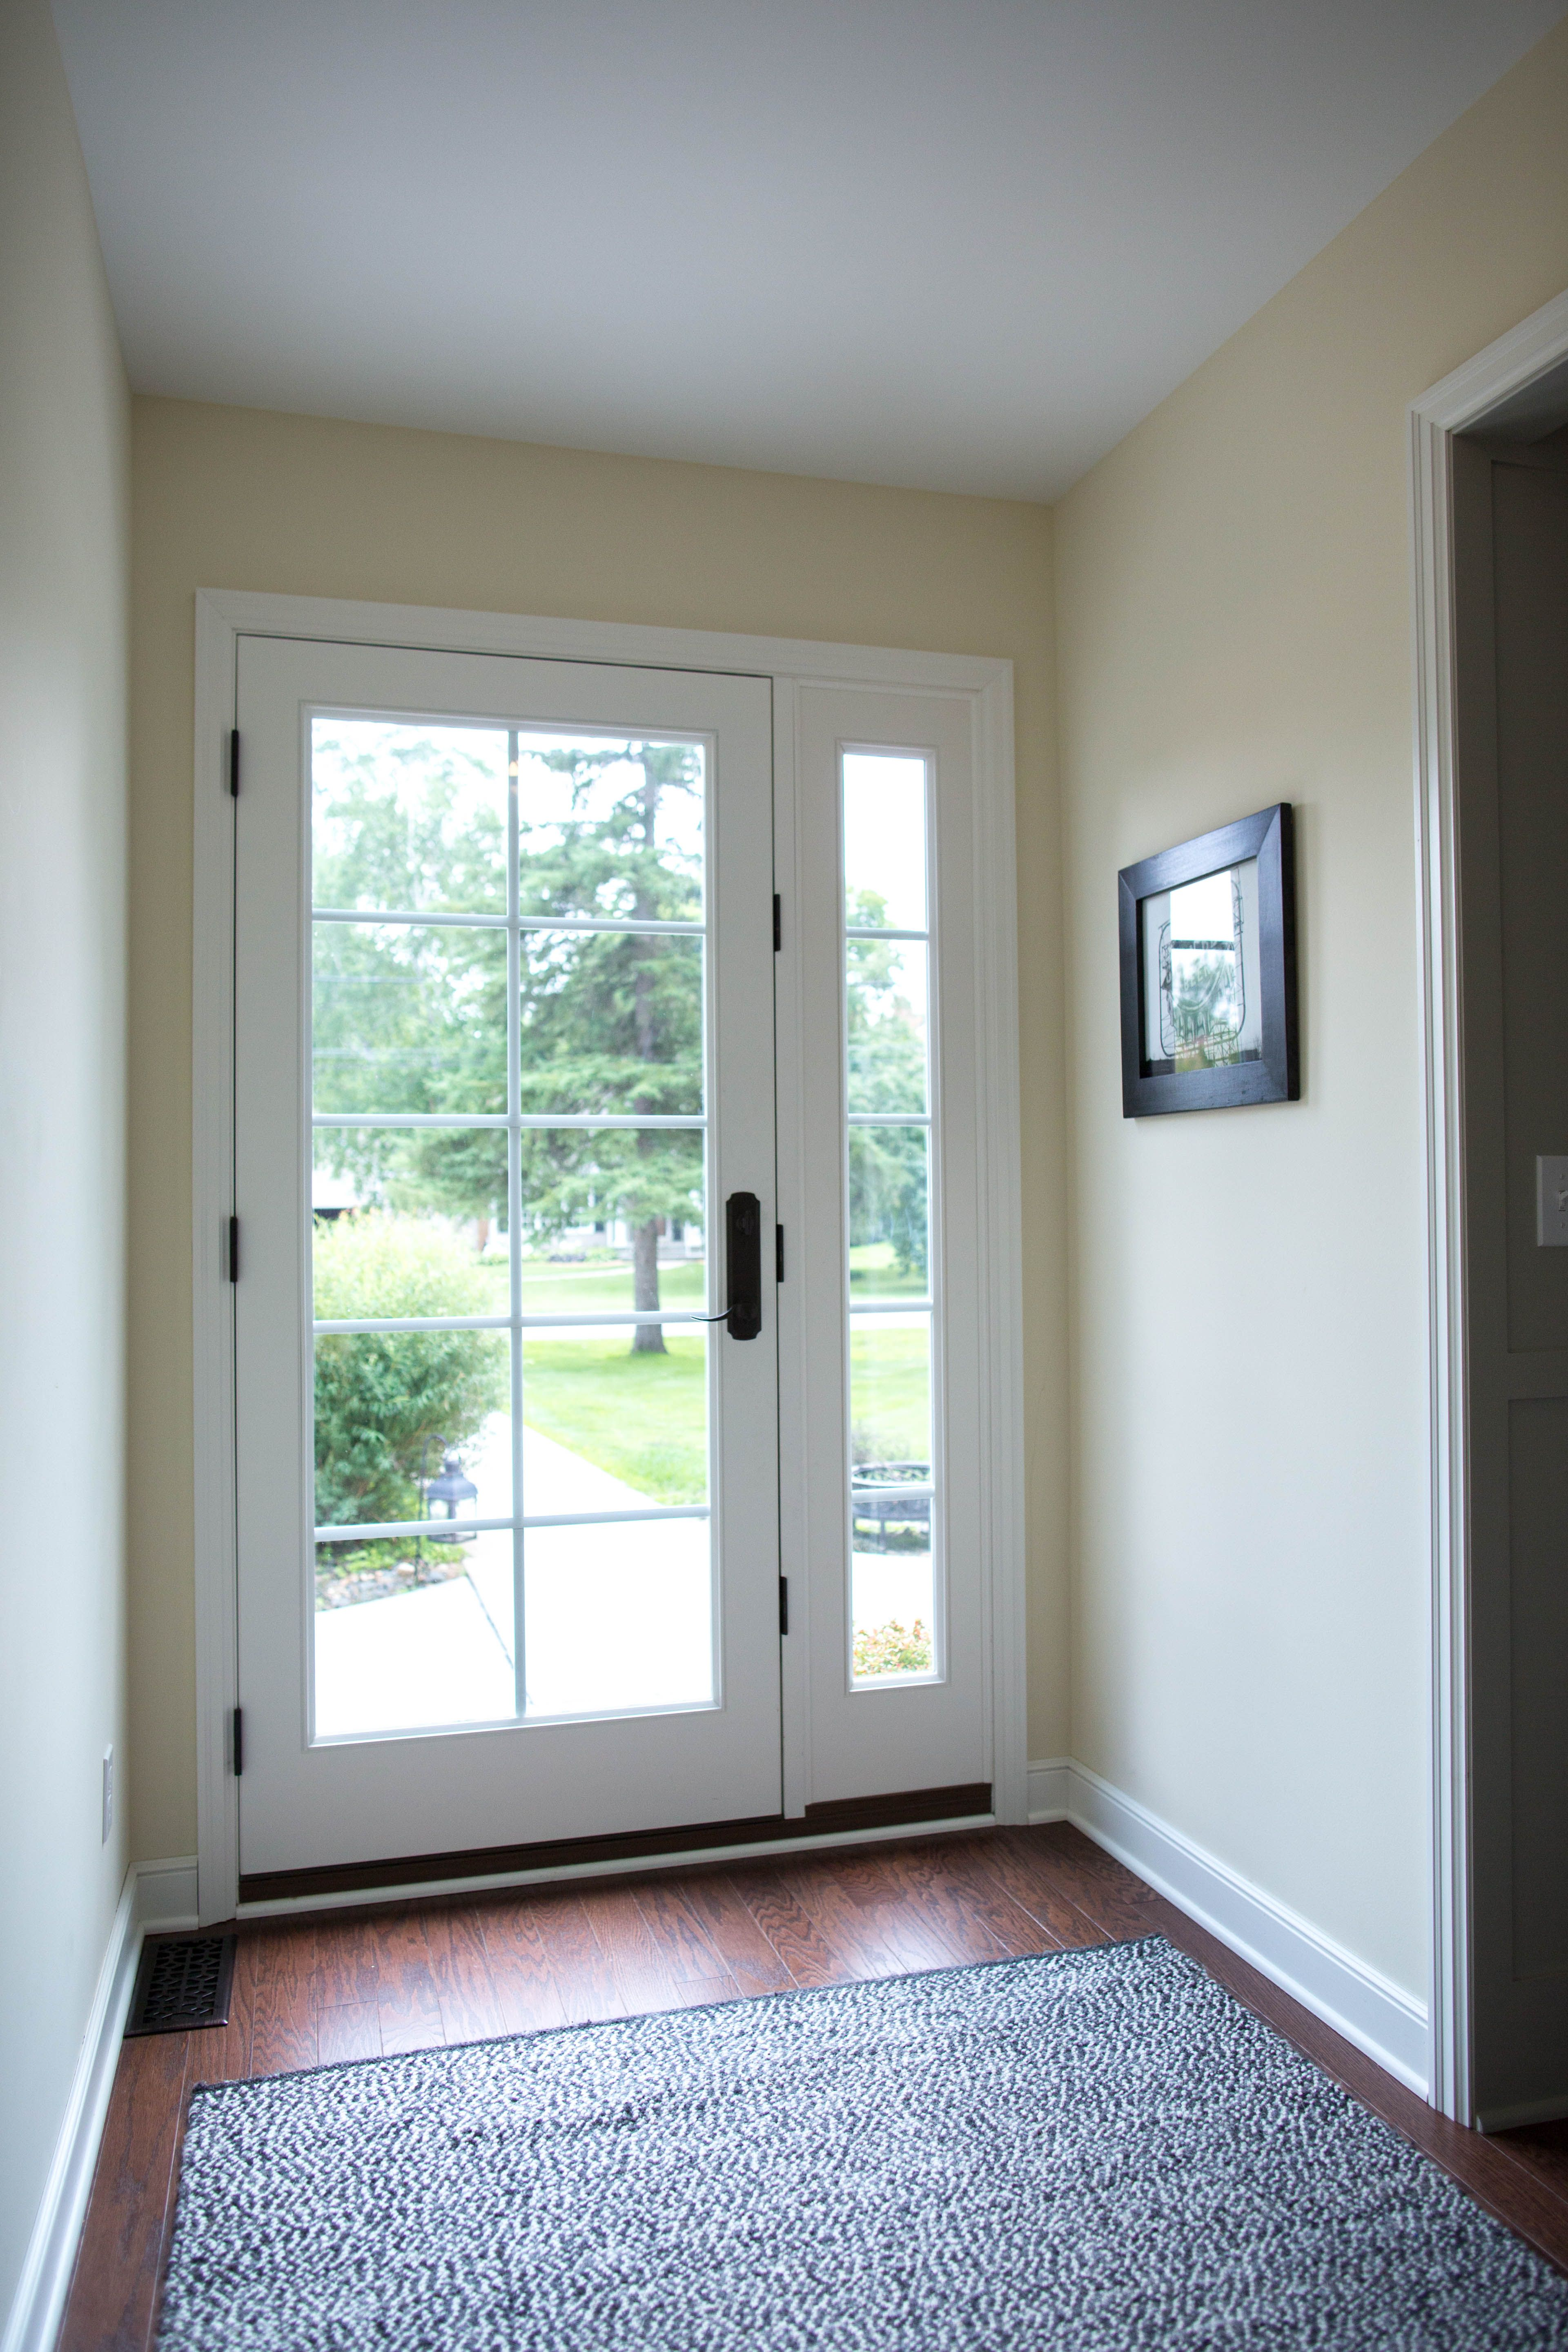 Exterior Doors | Let The Sunshine In With A Full Lite Glass And Matching  Sidelight. This One Features An Oil Rubbed Bronze, Multi Point Locking  System For ...